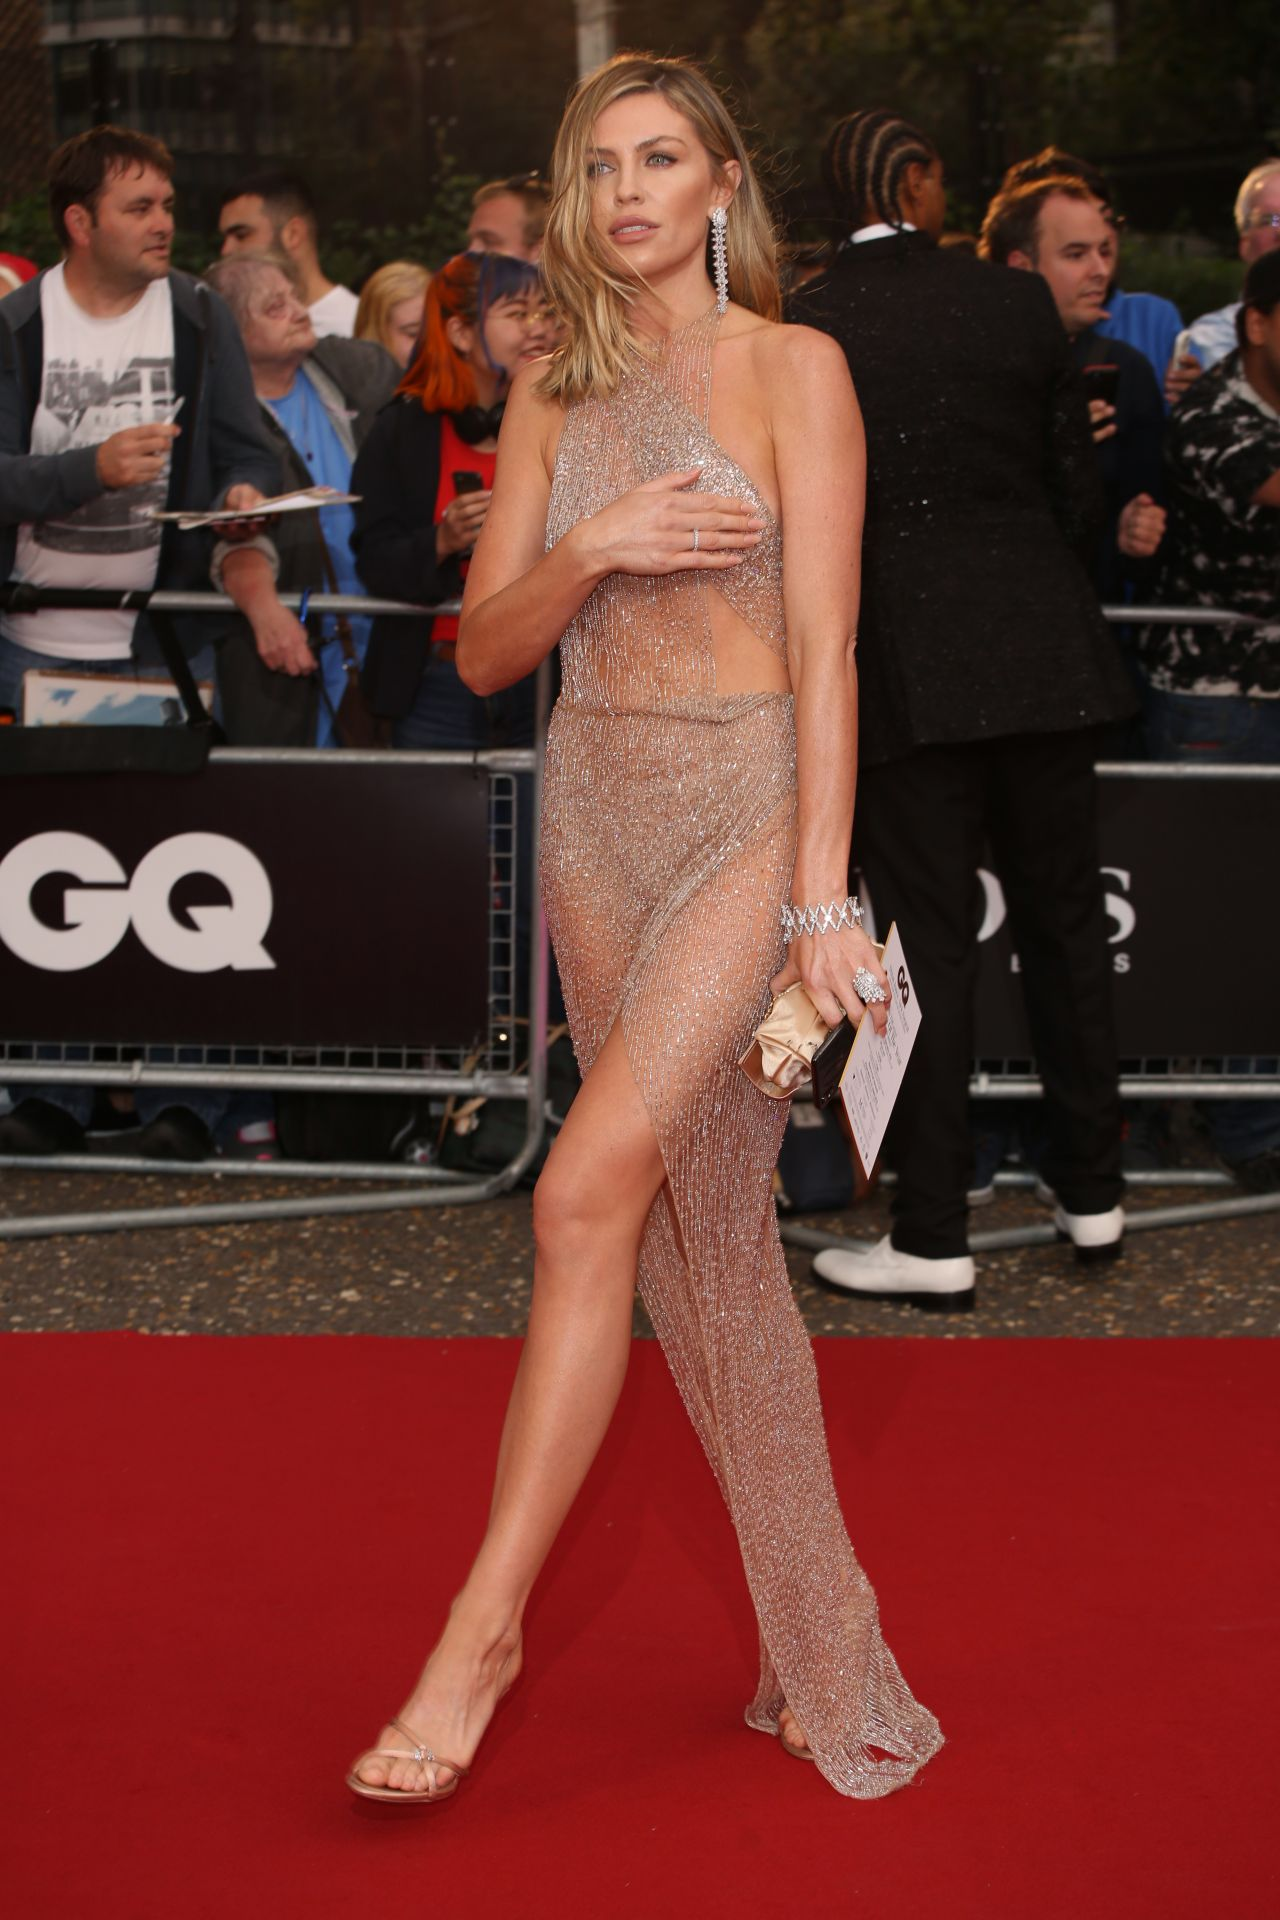 Abbey Clancy  Gq Men Of The Year Awards 2018 In London-2951